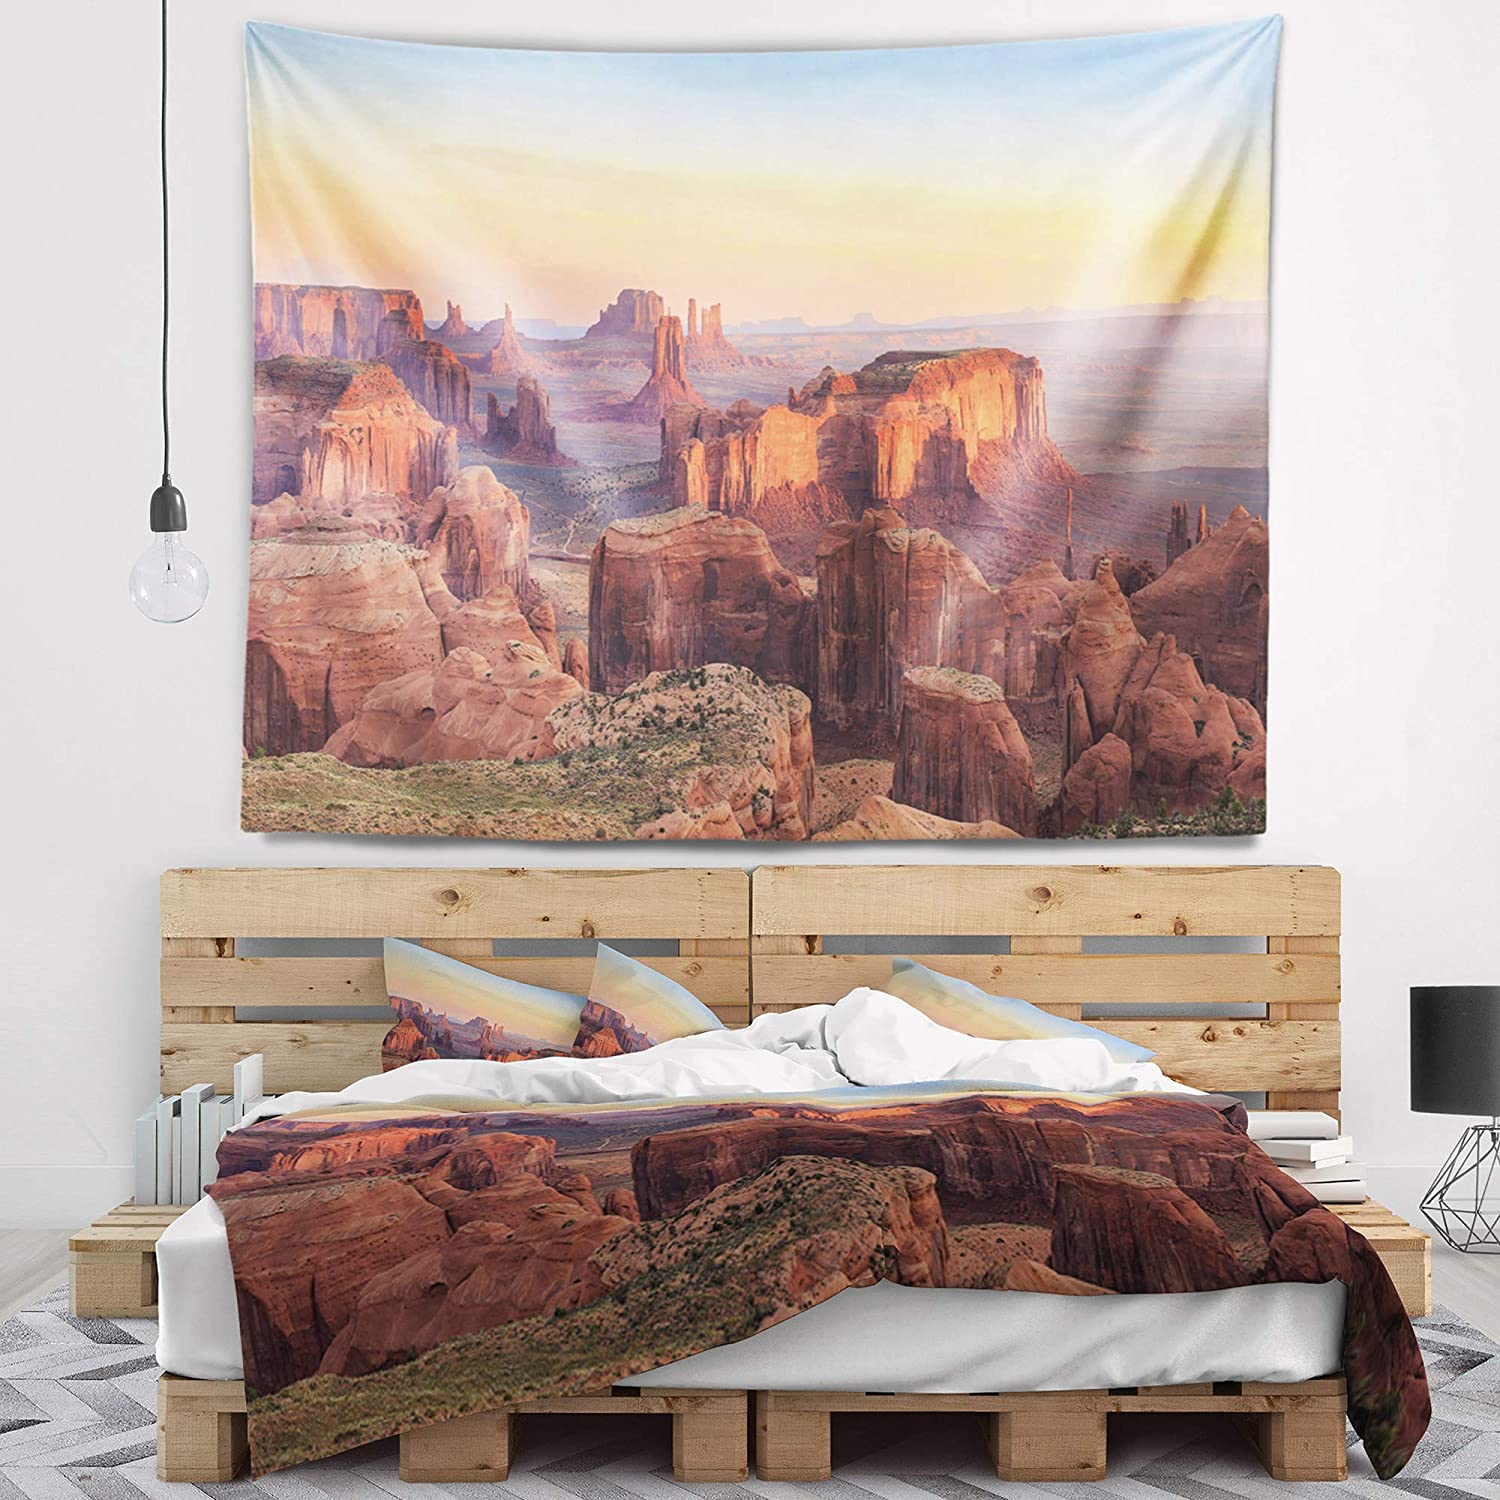 60 in Designart TAP15384-60-50  Hunts Mesa Panorama Landscape Blanket D/écor Art for Home and Office Wall Tapestry Large in x 50 in